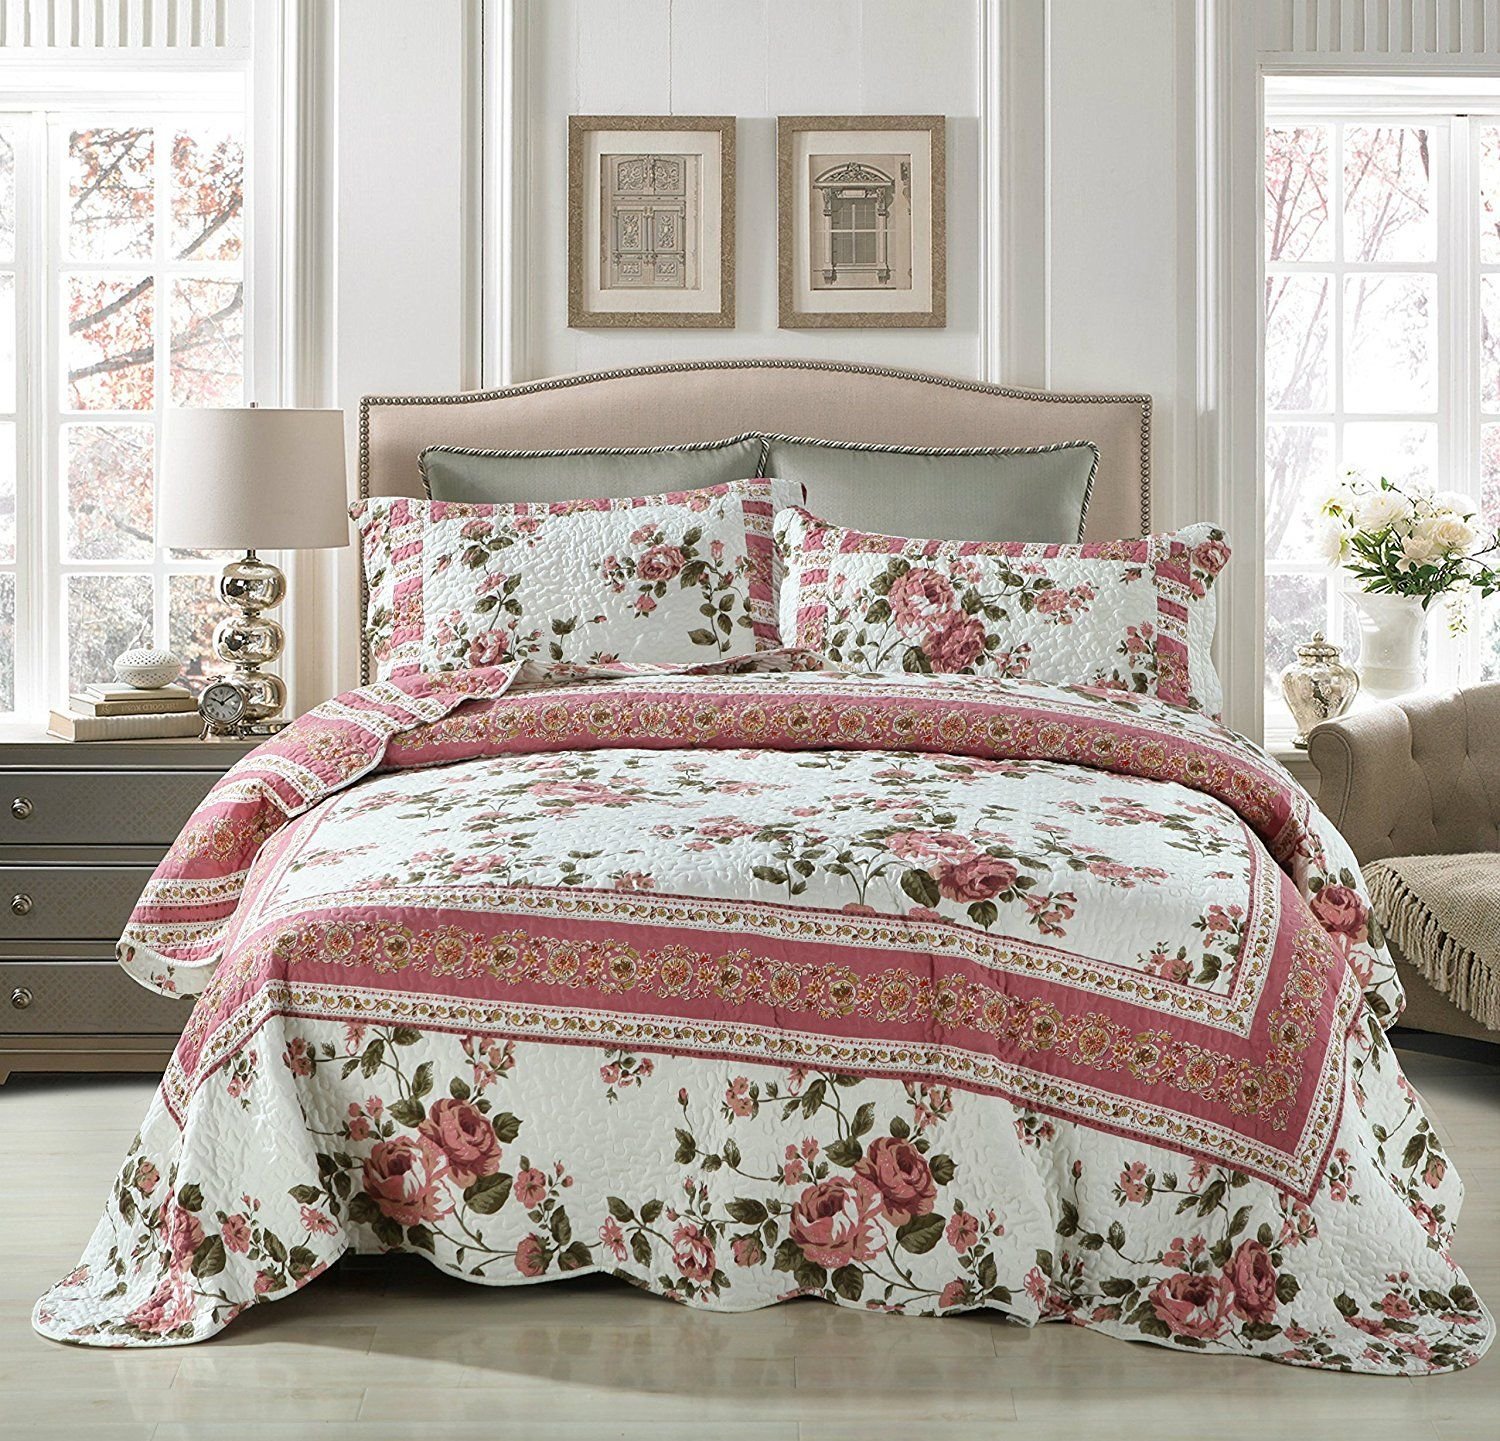 beach cherry curtains pic blossom bed bb rose a styles twin stunning bag and comforter incredible bedroom dusty of trends bedding files in ideas themed